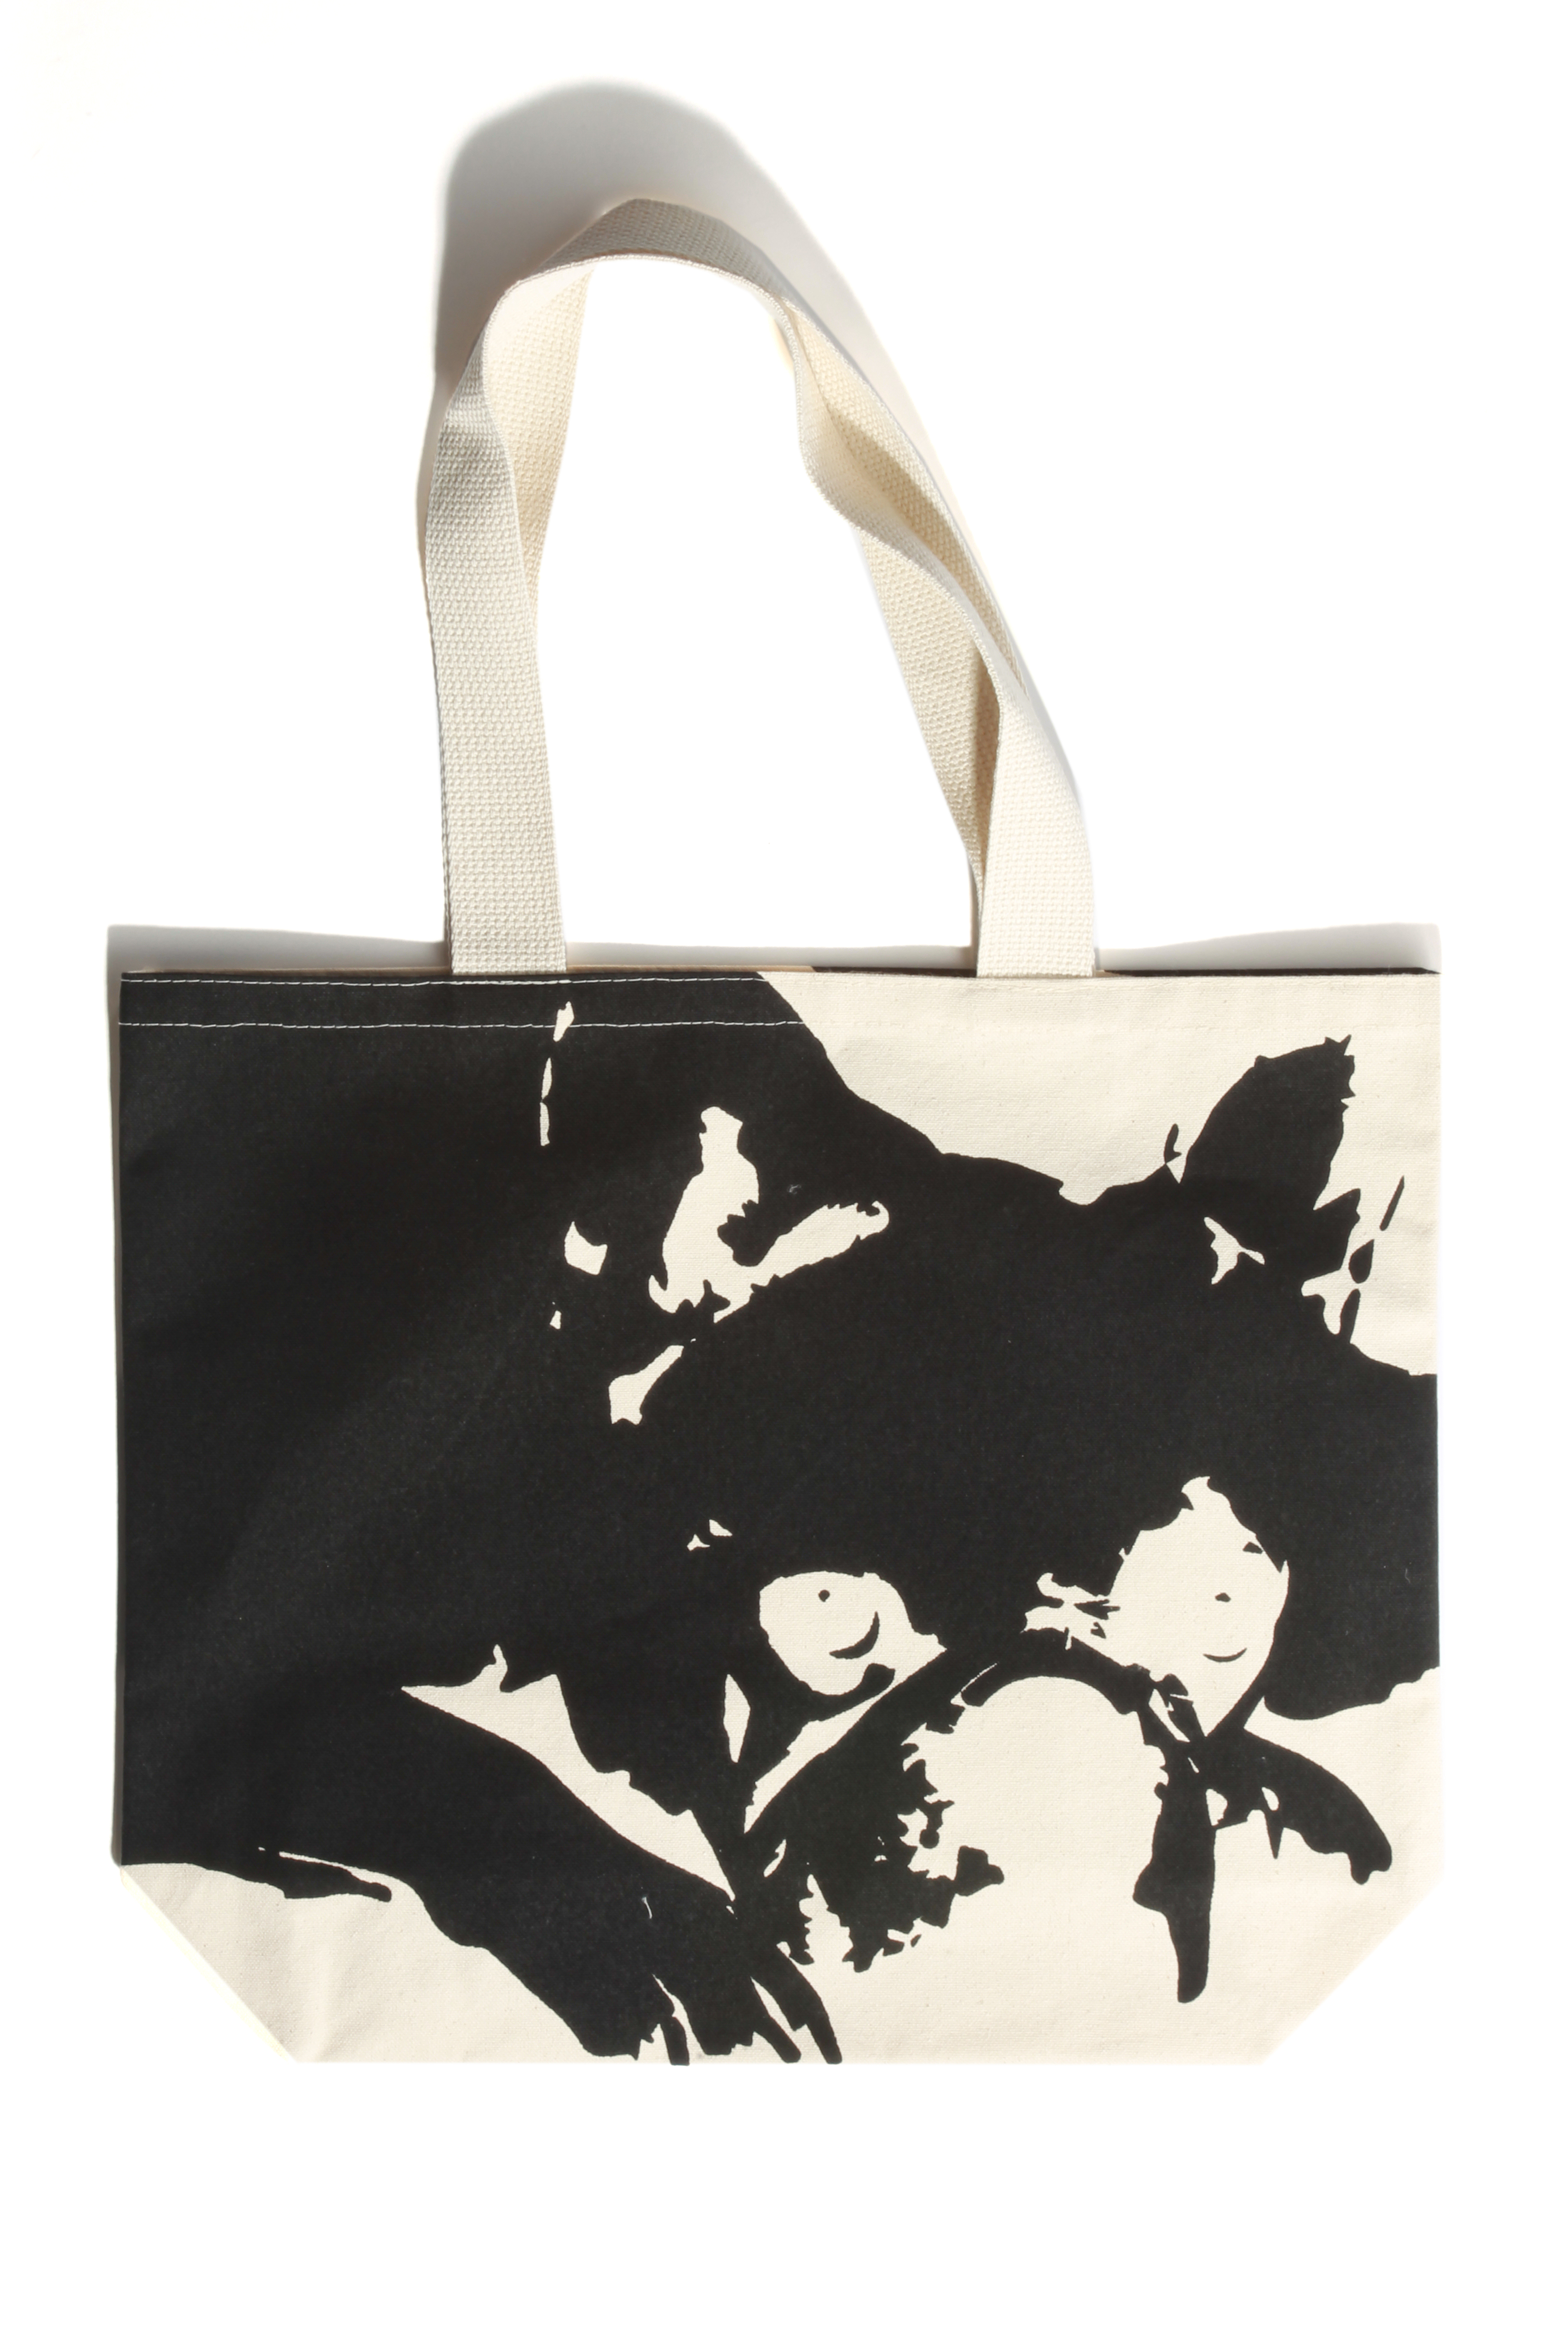 One of the tote designs featuring Juanita MORE!'s French Bulldog Jackson. Photo by Bob Toy.